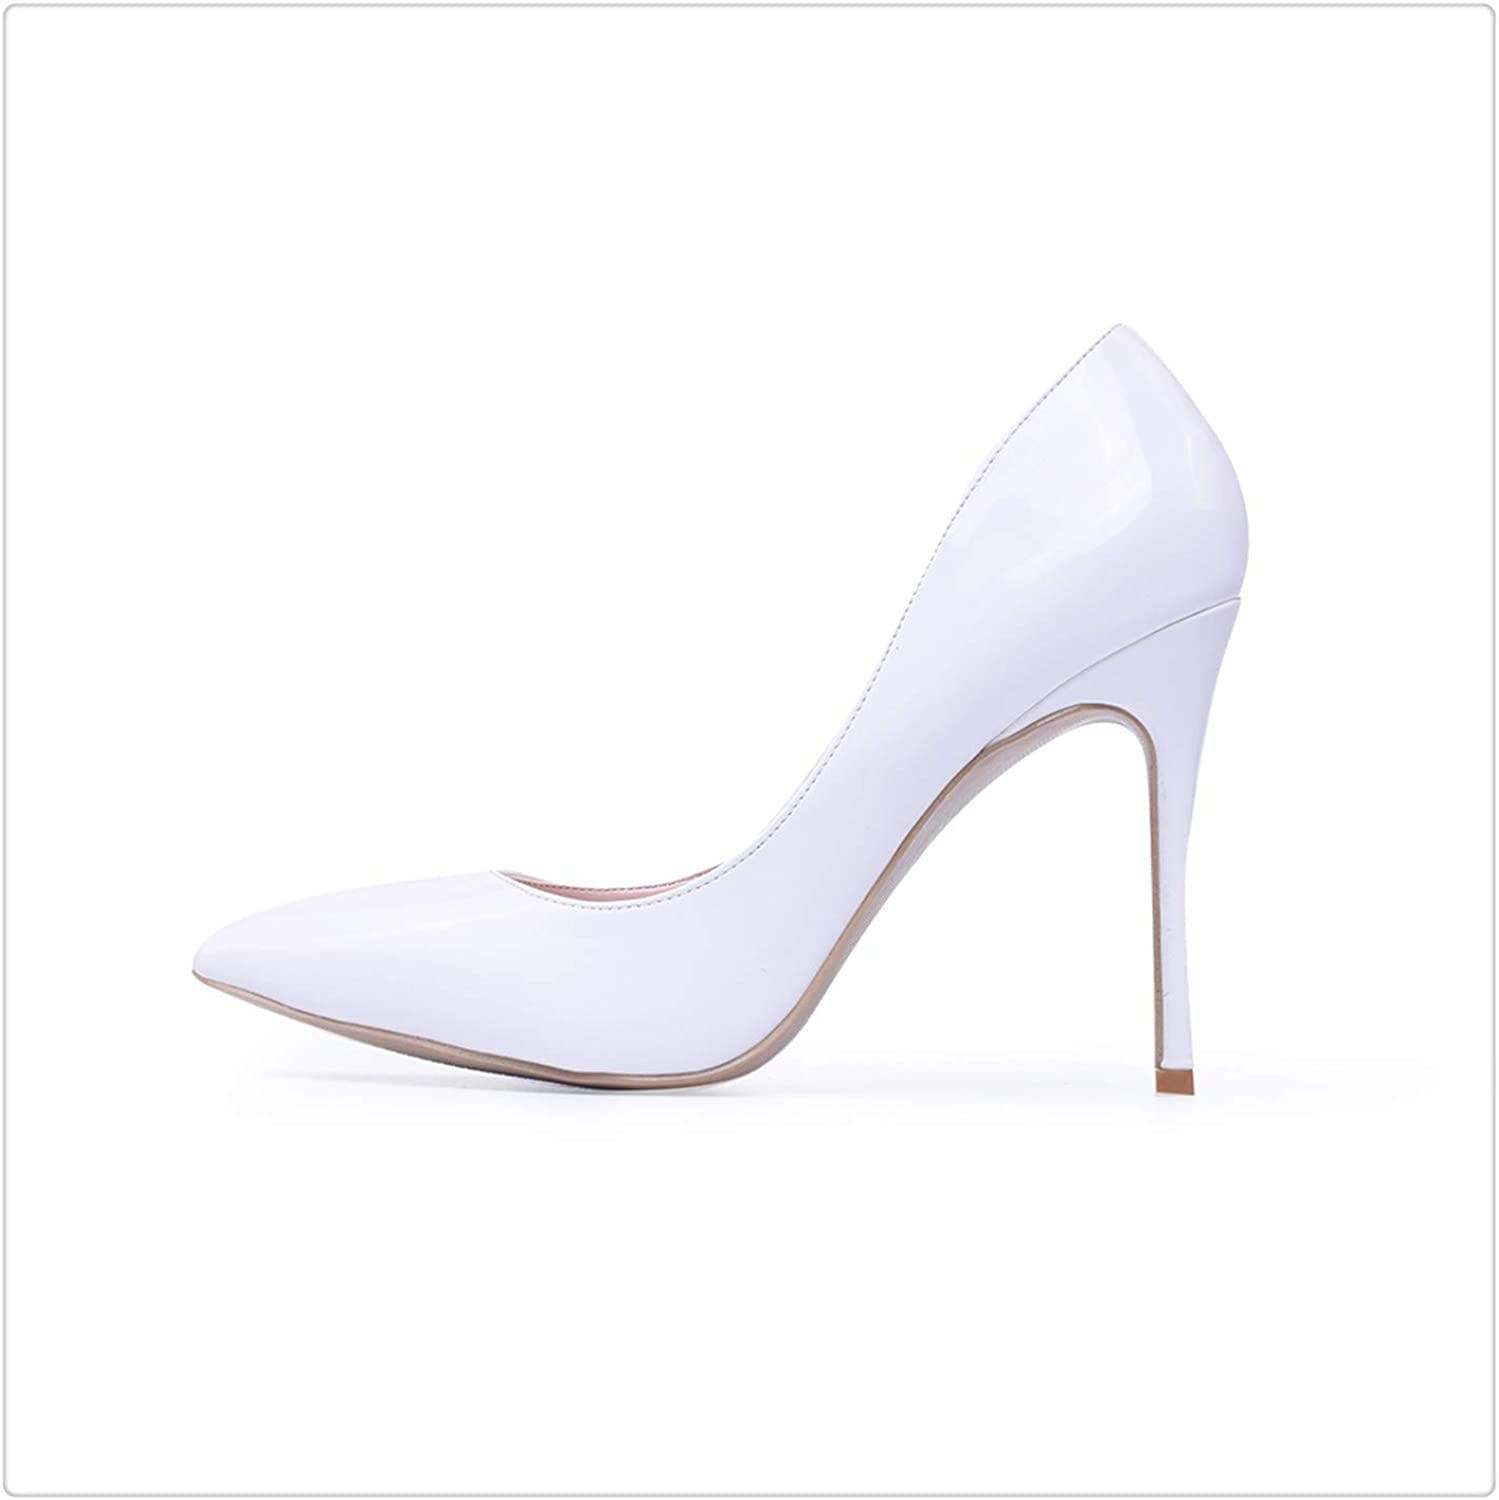 ZXCVB& Women Pumps High Heels shoes 10cm White shoes for Wedding Lacquer Stiletto Heels High Heeled shoes for Prom Party Heel Big Size White 10cm 9